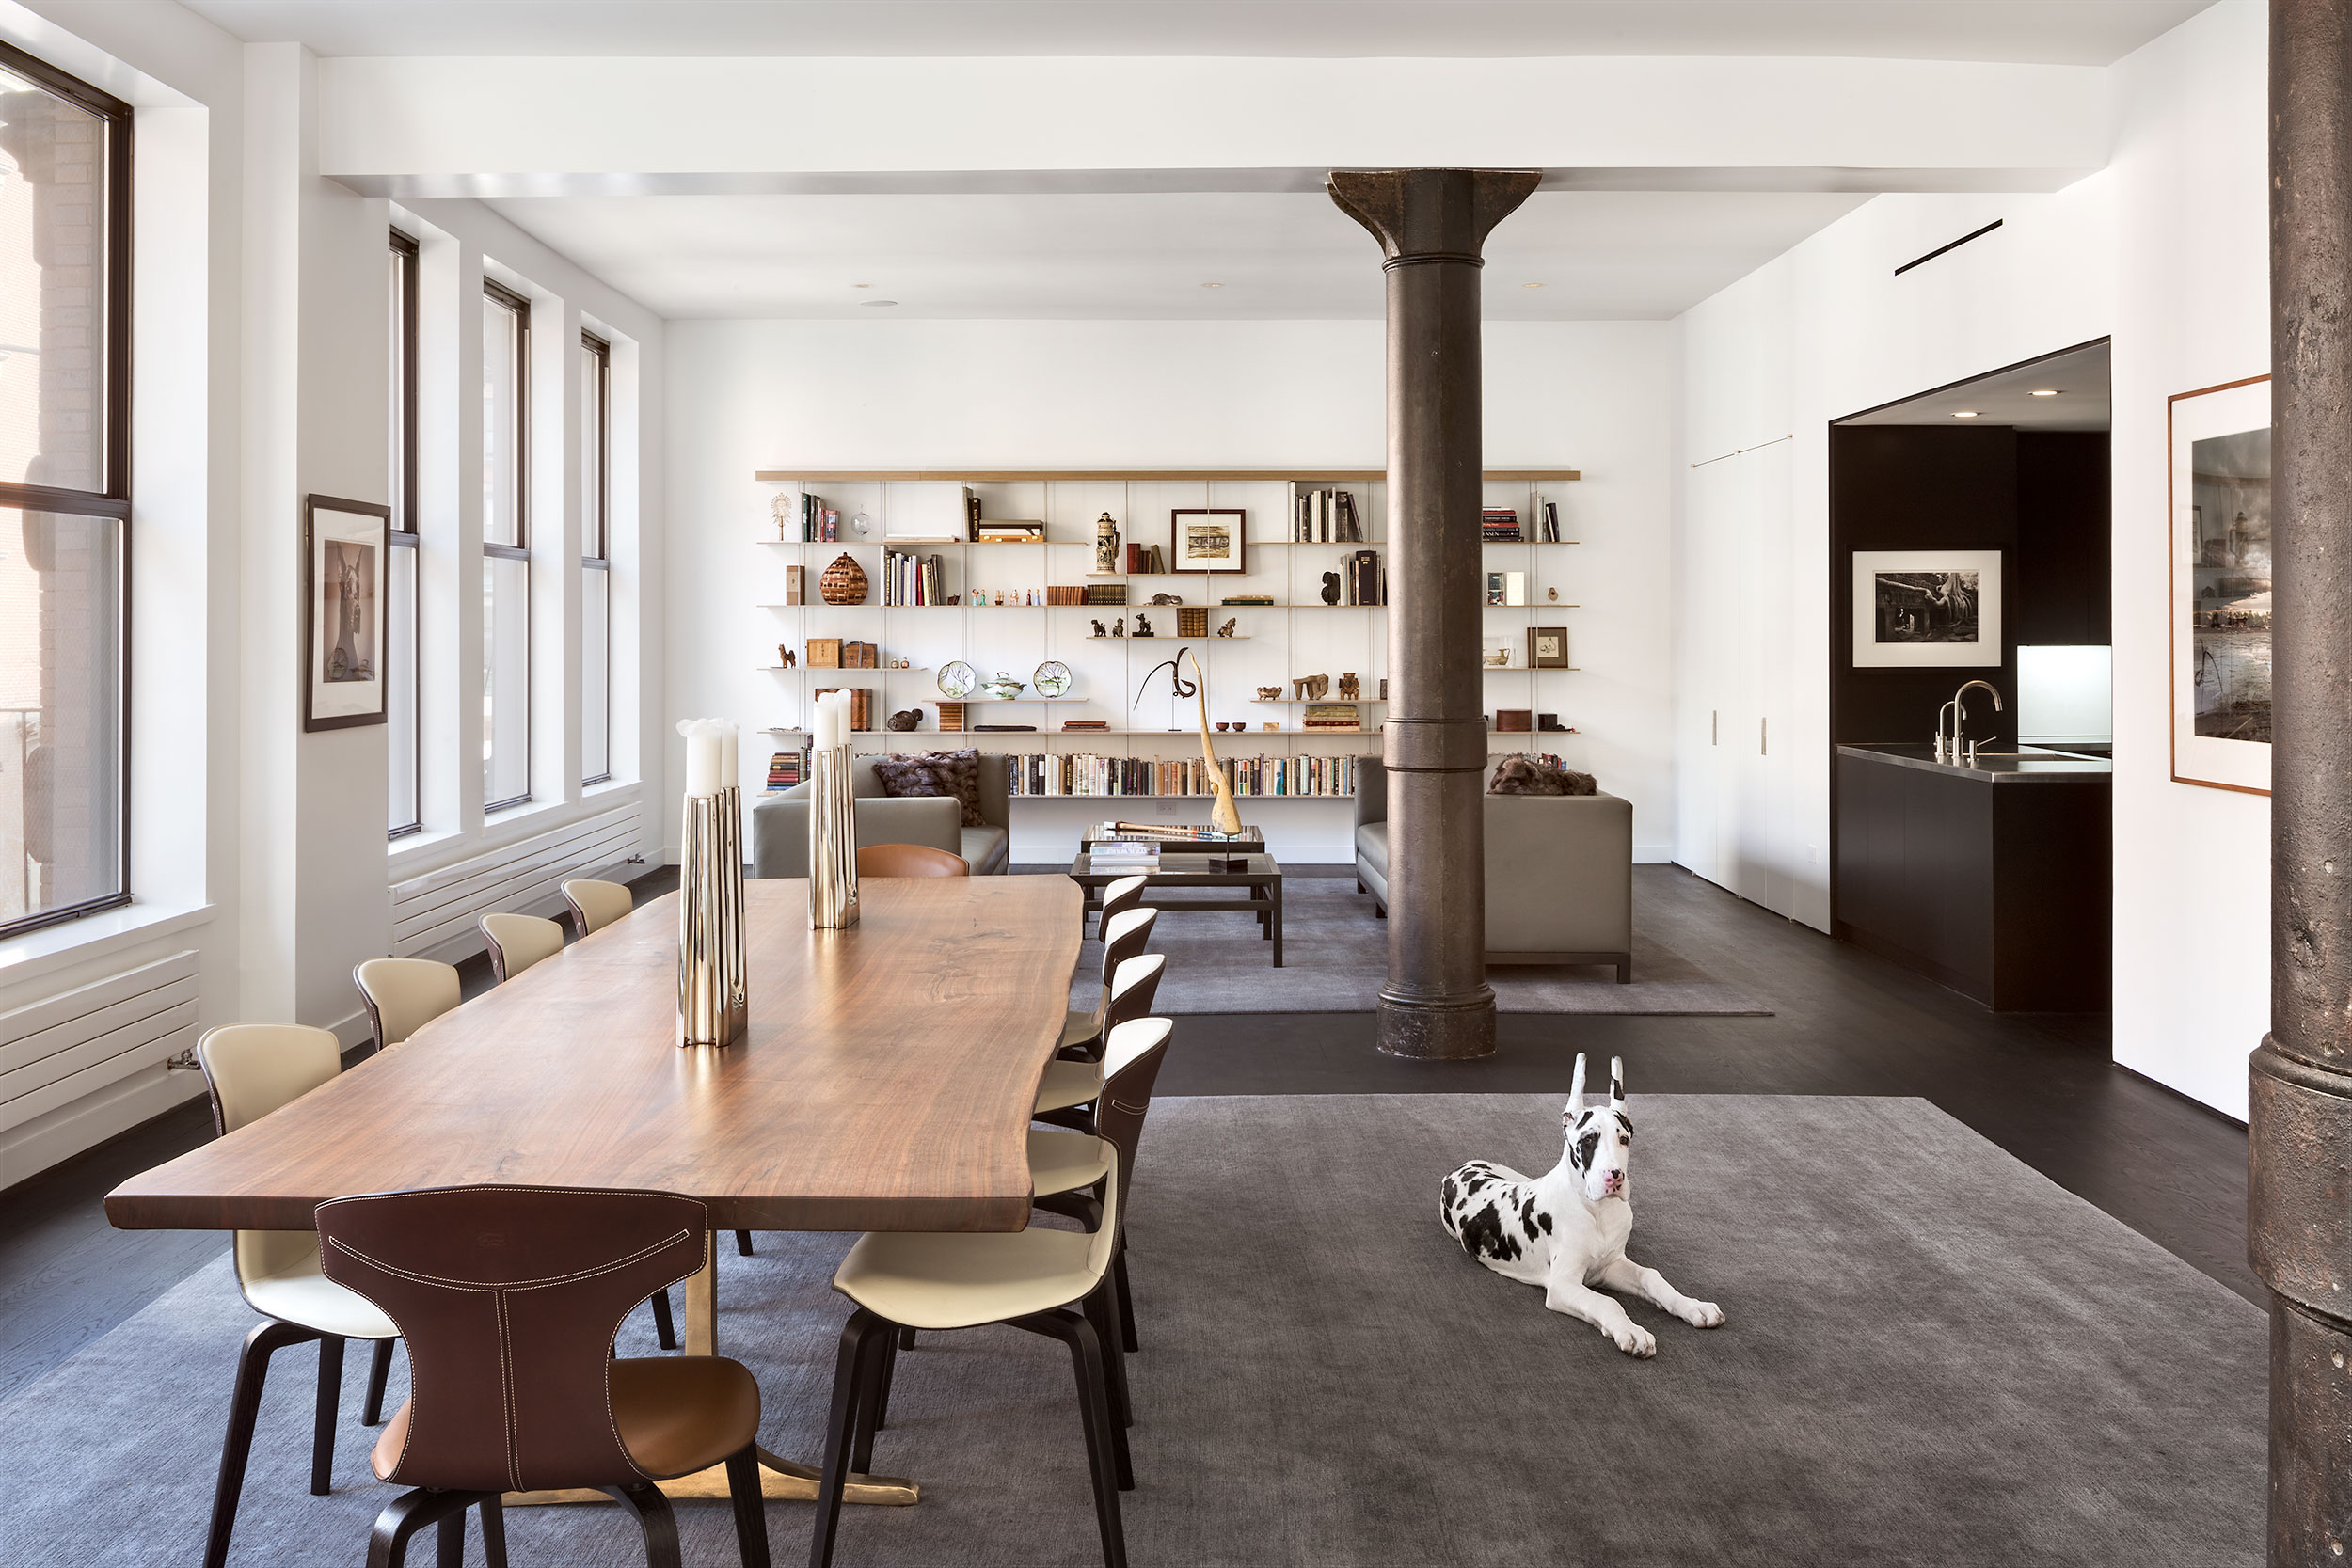 Bleeker Street Residence, Manhattan, New York, Modern Interior